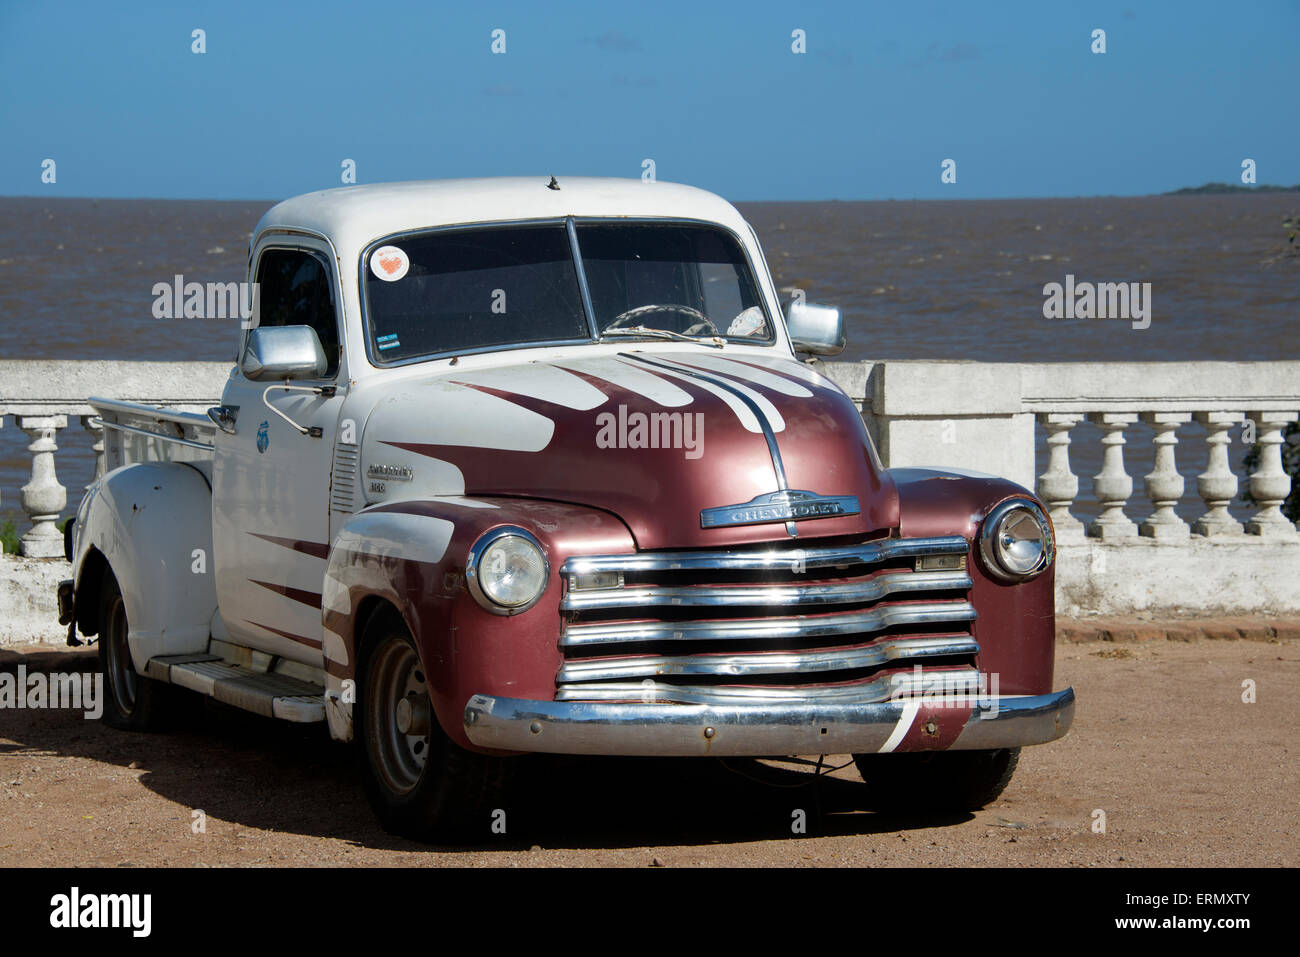 Truck Classic 1940s Stock Photos & Truck Classic 1940s ...